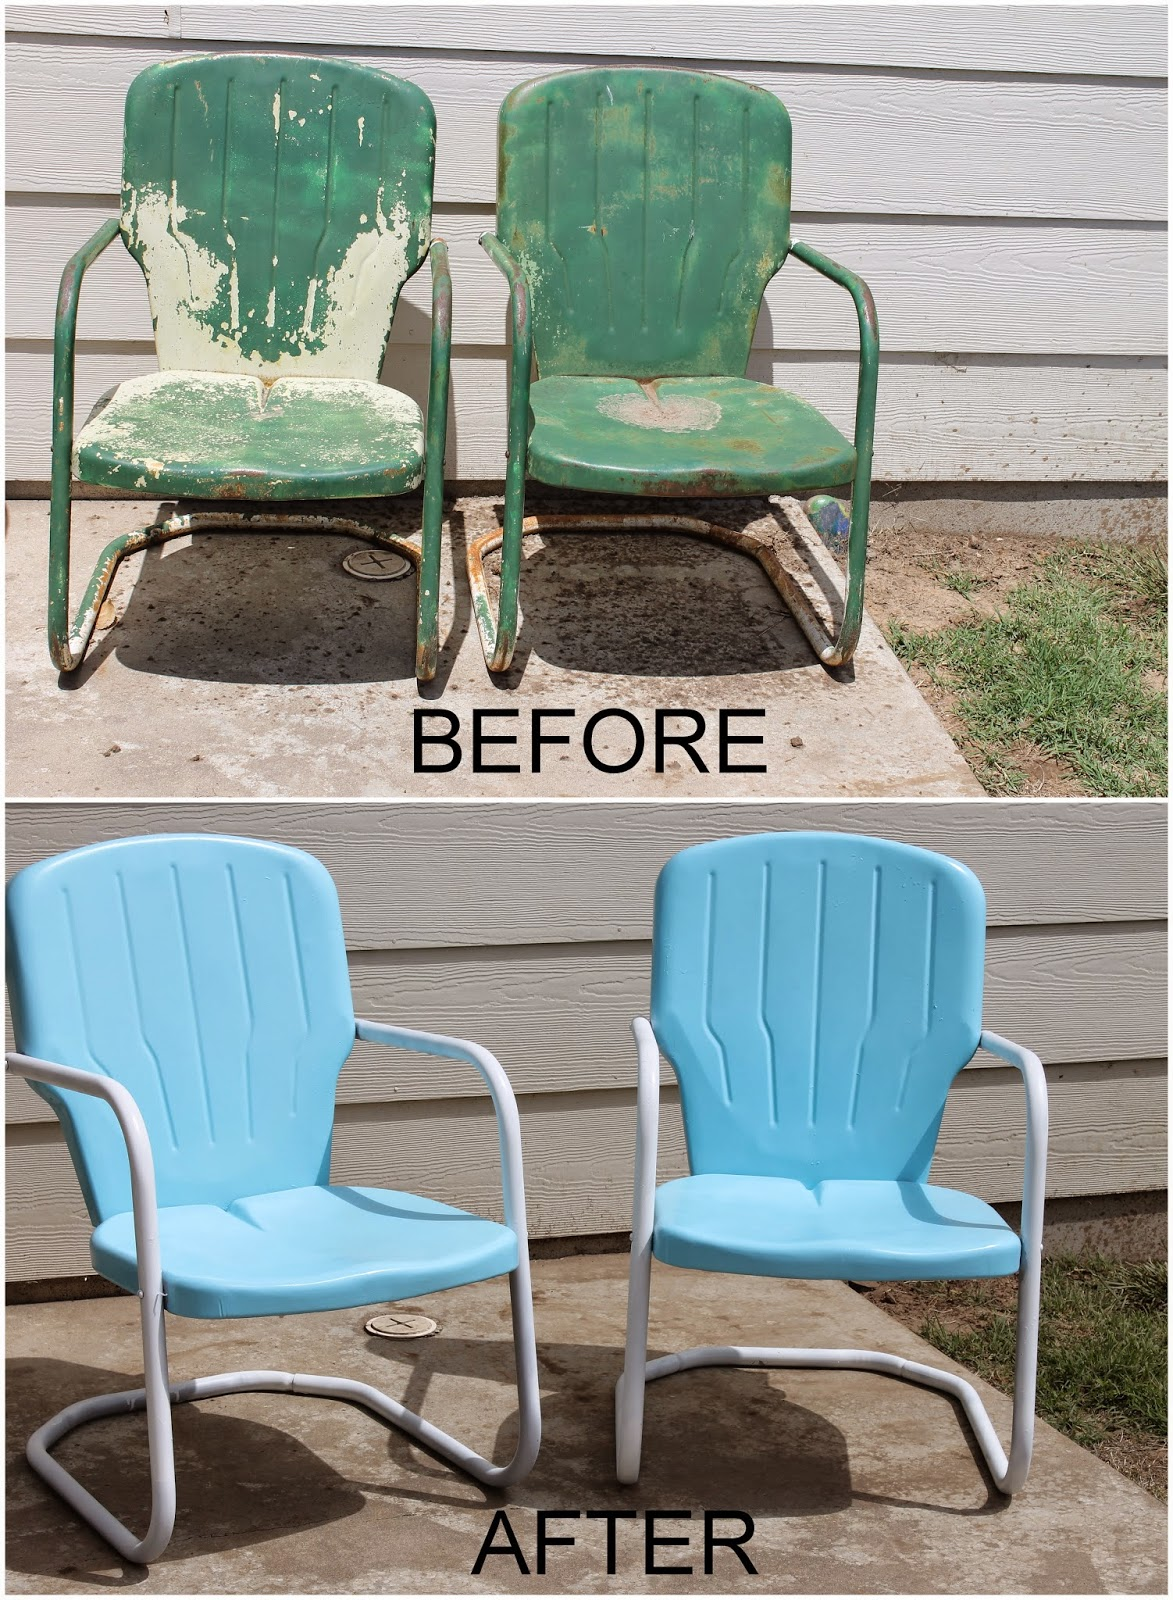 Repaint Old Metal Patio Chairs Diy Paint Outdoor Metal Motel Chairs Diy Paint Outdoor Metal Chairs